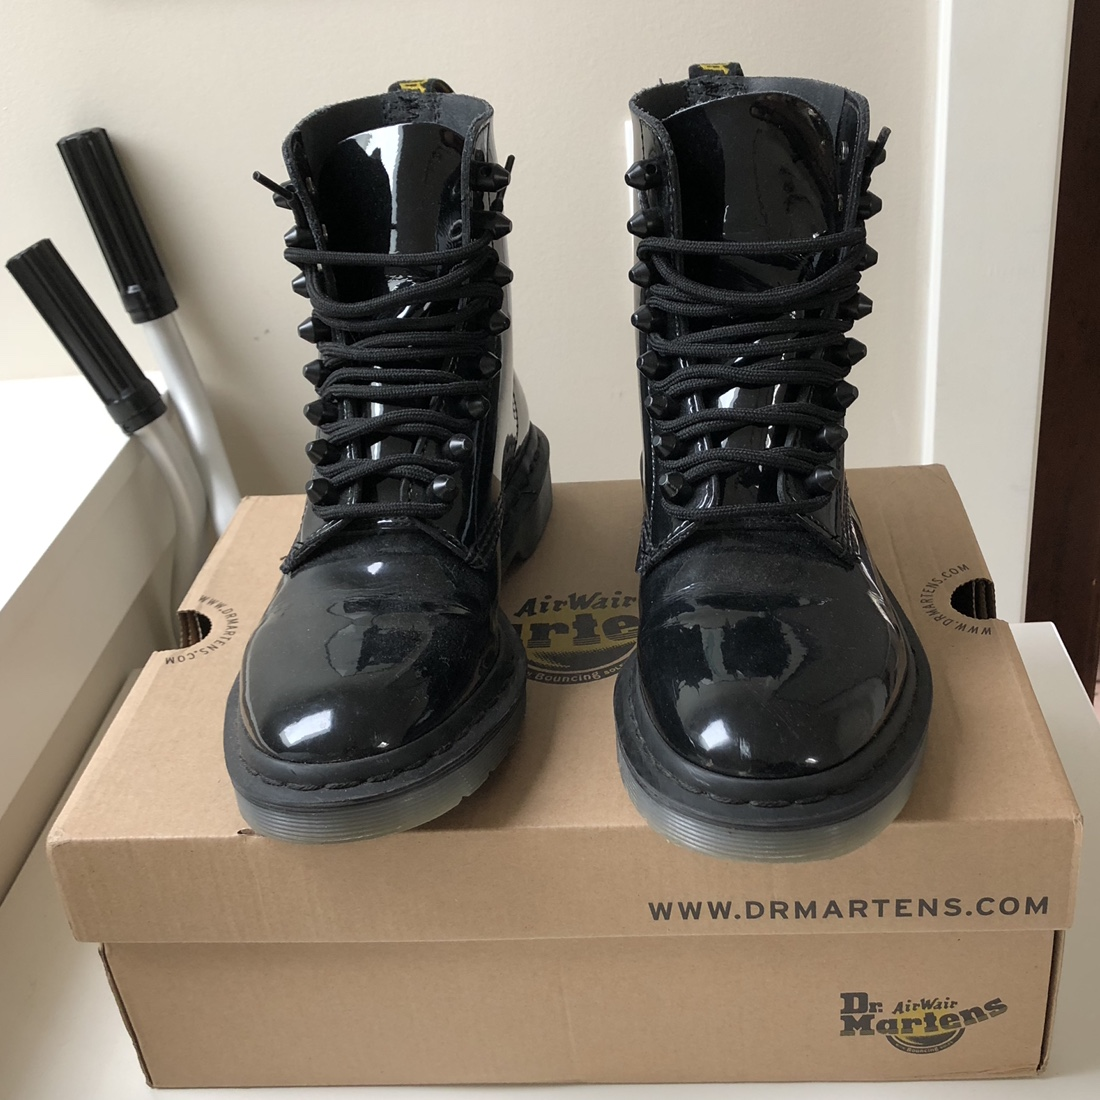 Dr Martens Pascal Stud boots in Black